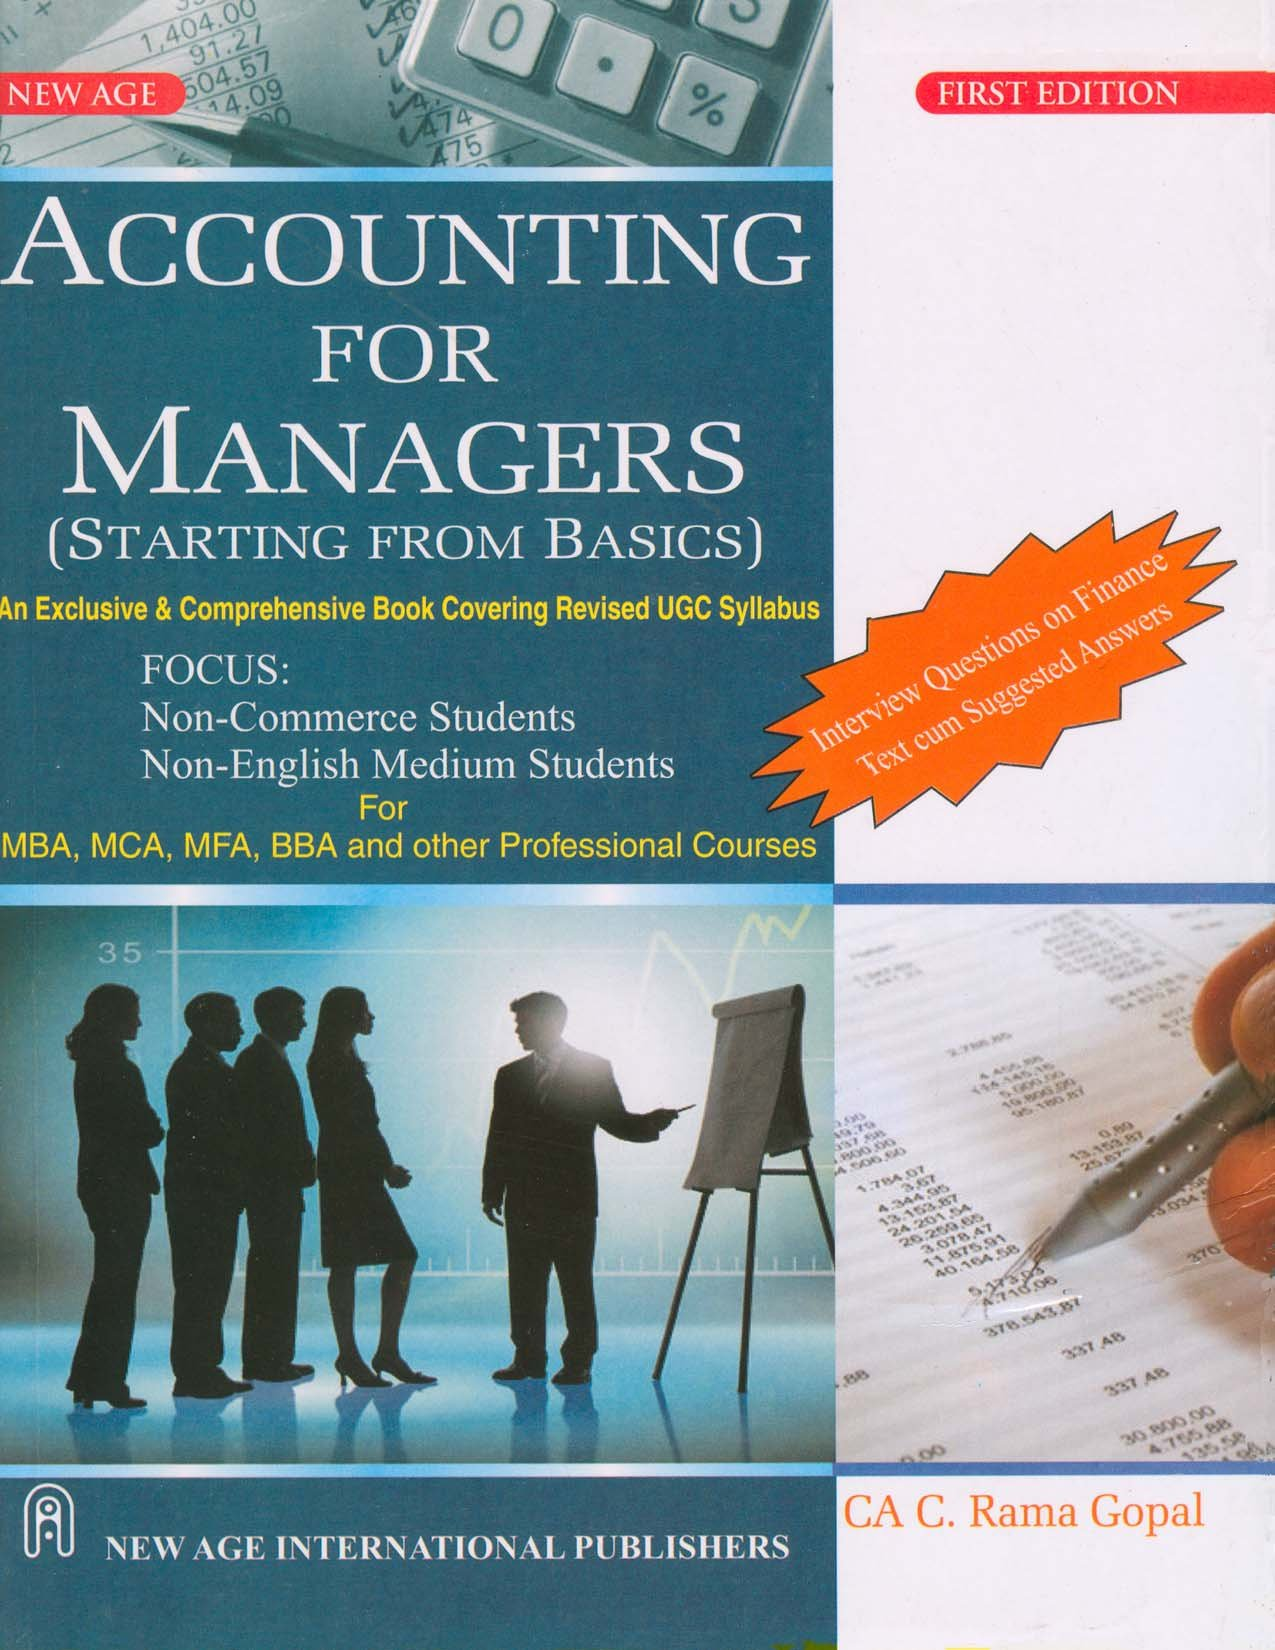 Accounting for Managers.